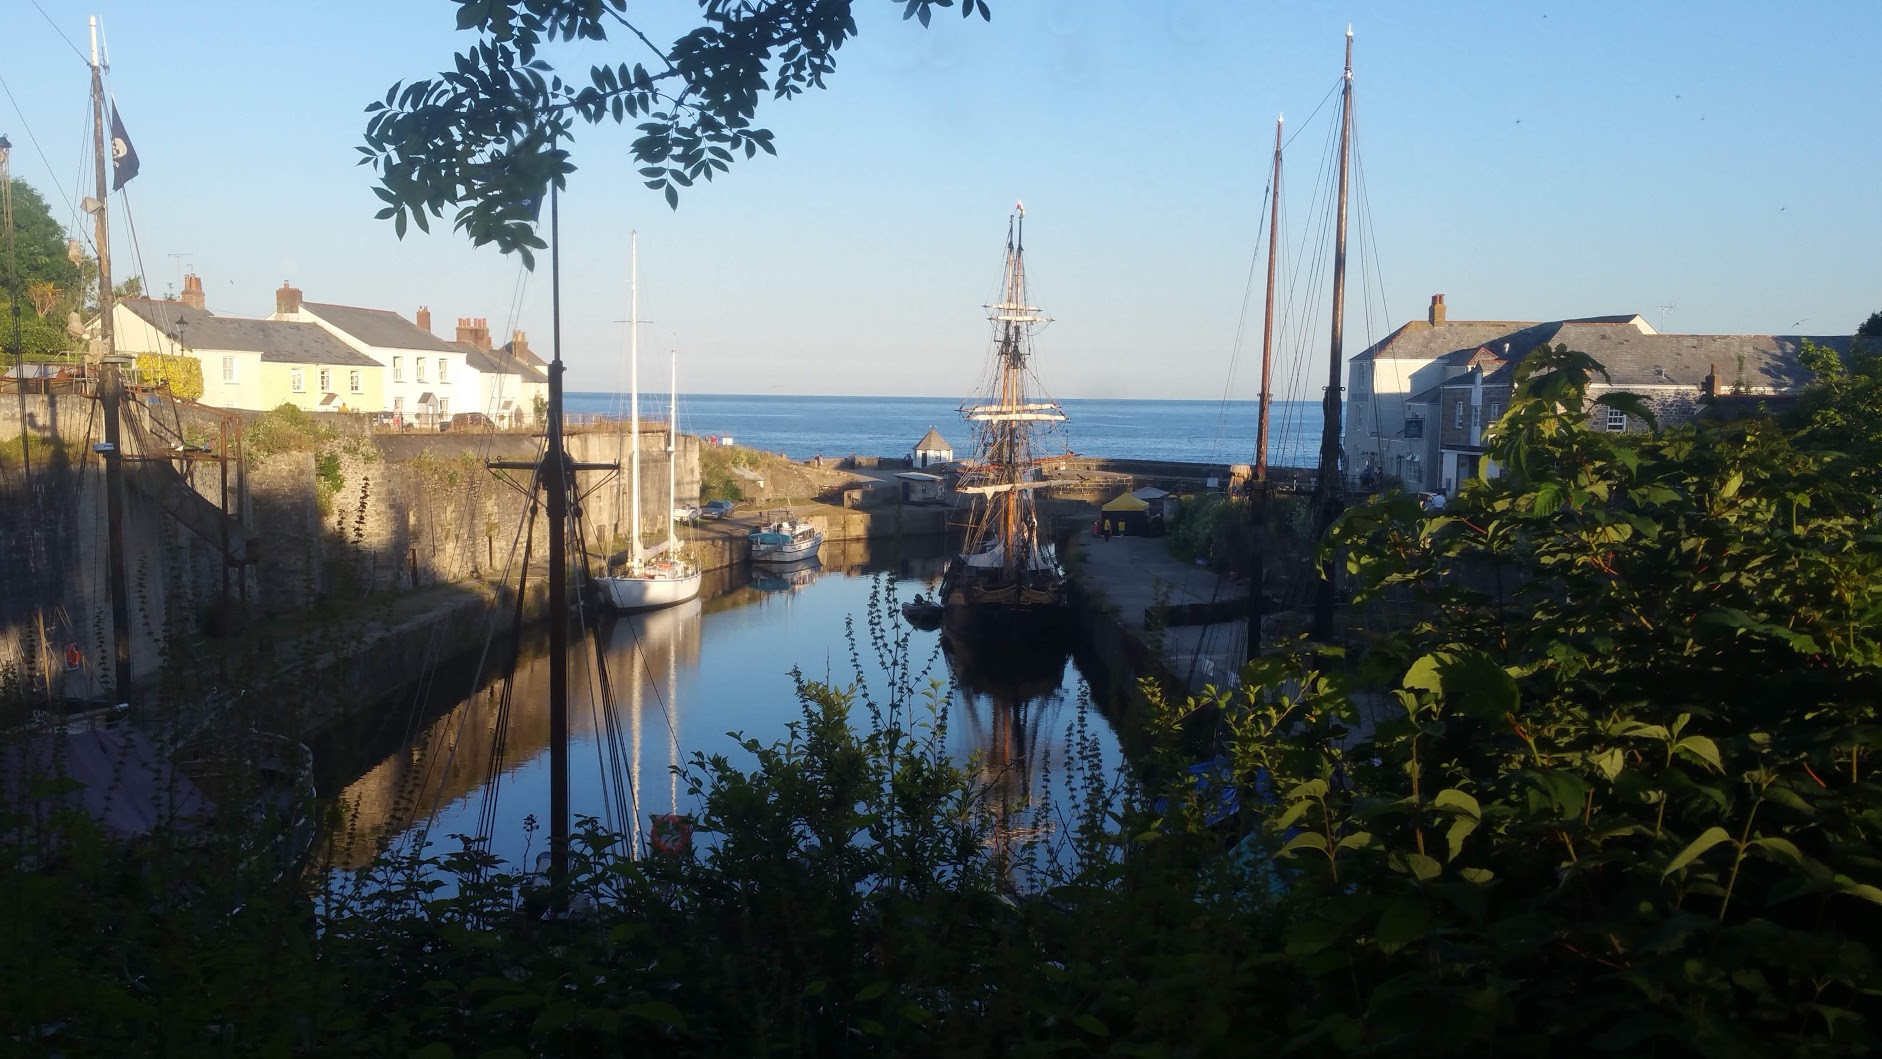 charlestown harbour2.jpg